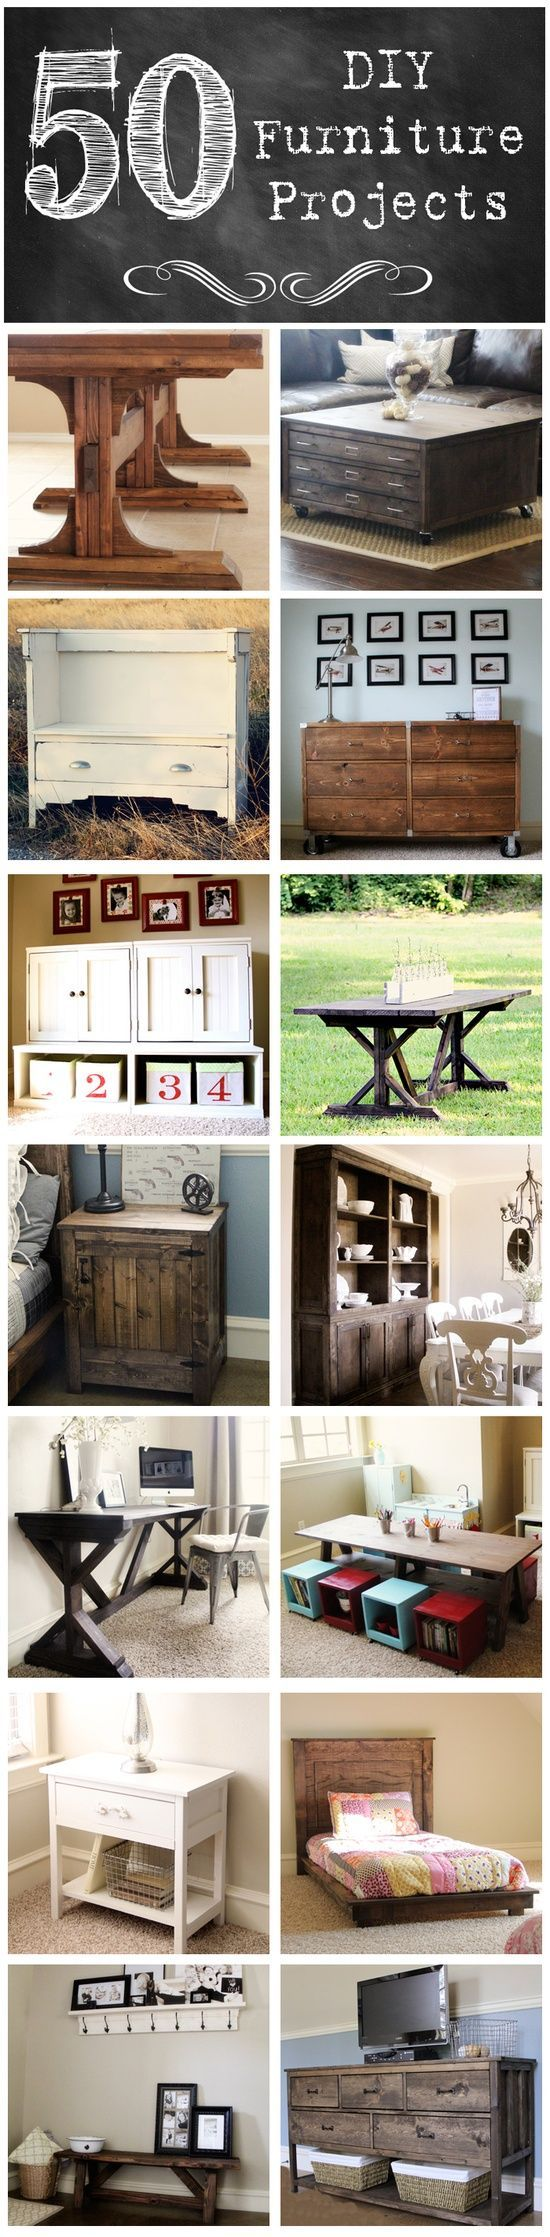 50 DIY   Home Furniture Projects   DIY Ideas 4 Home. 51 best images about Furniture Makeovers on Pinterest   Furniture